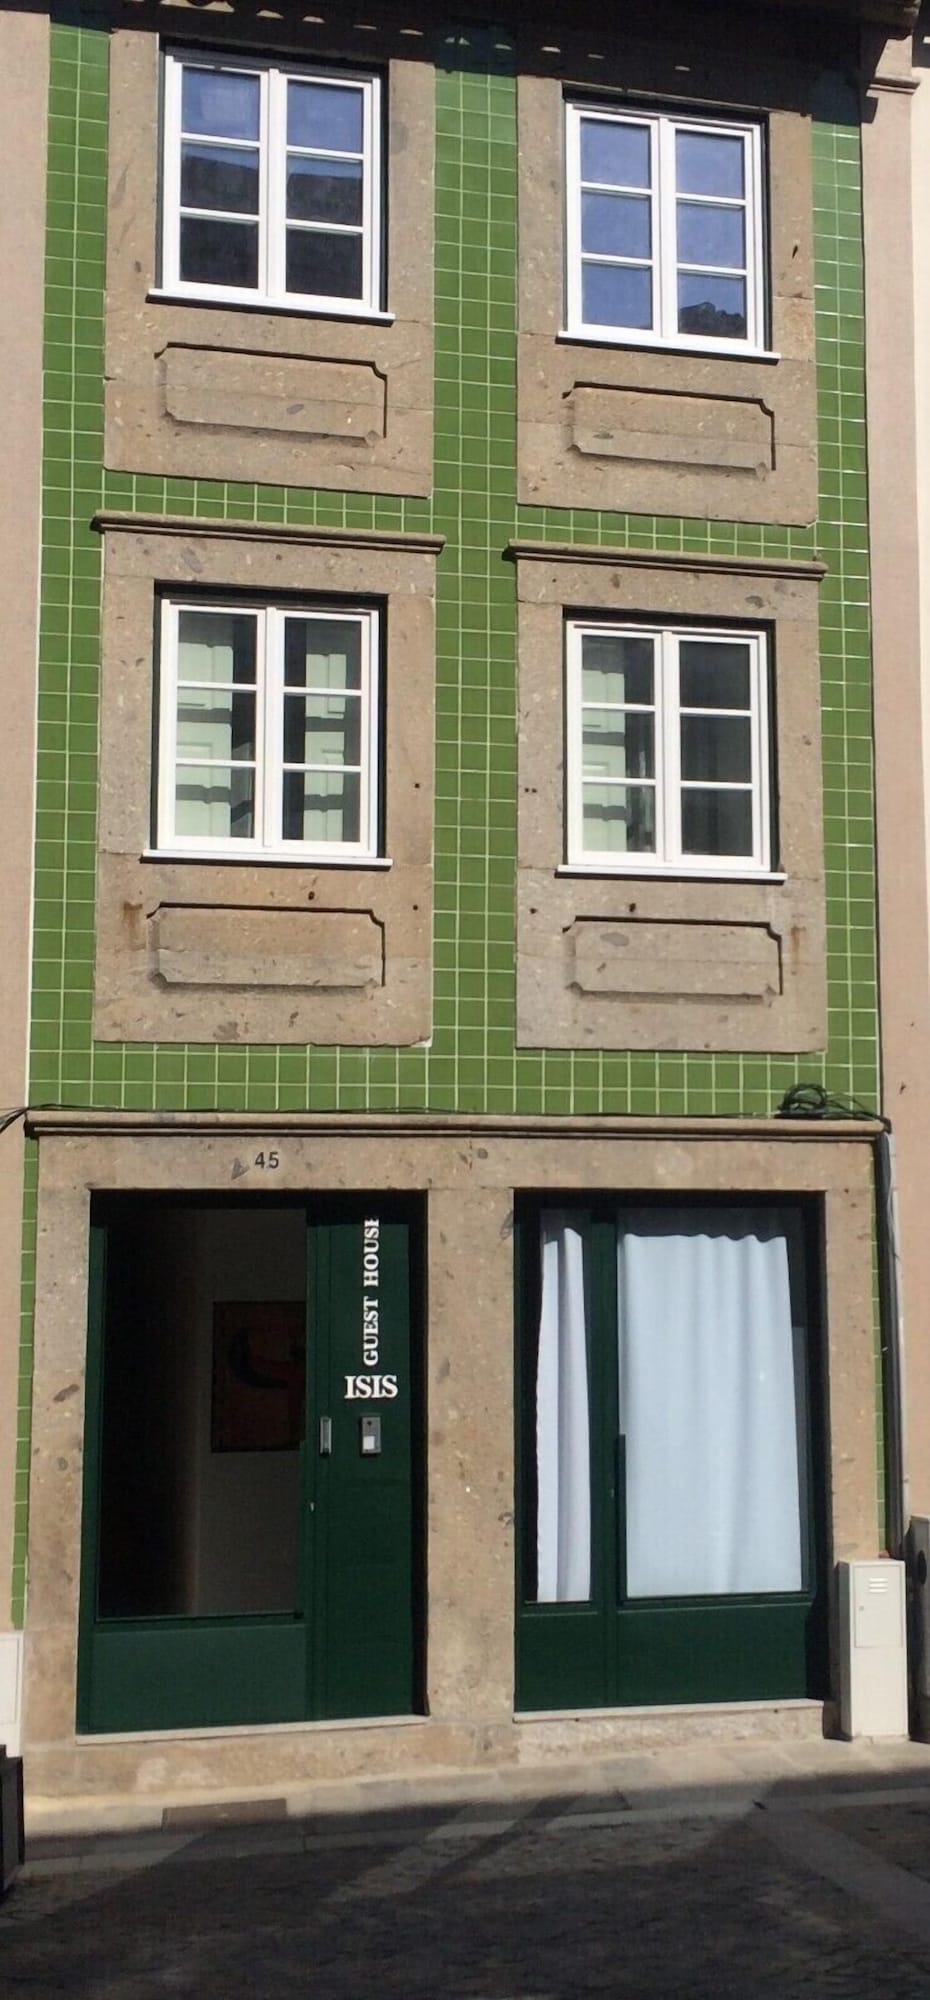 ISIS Guest House, Braga